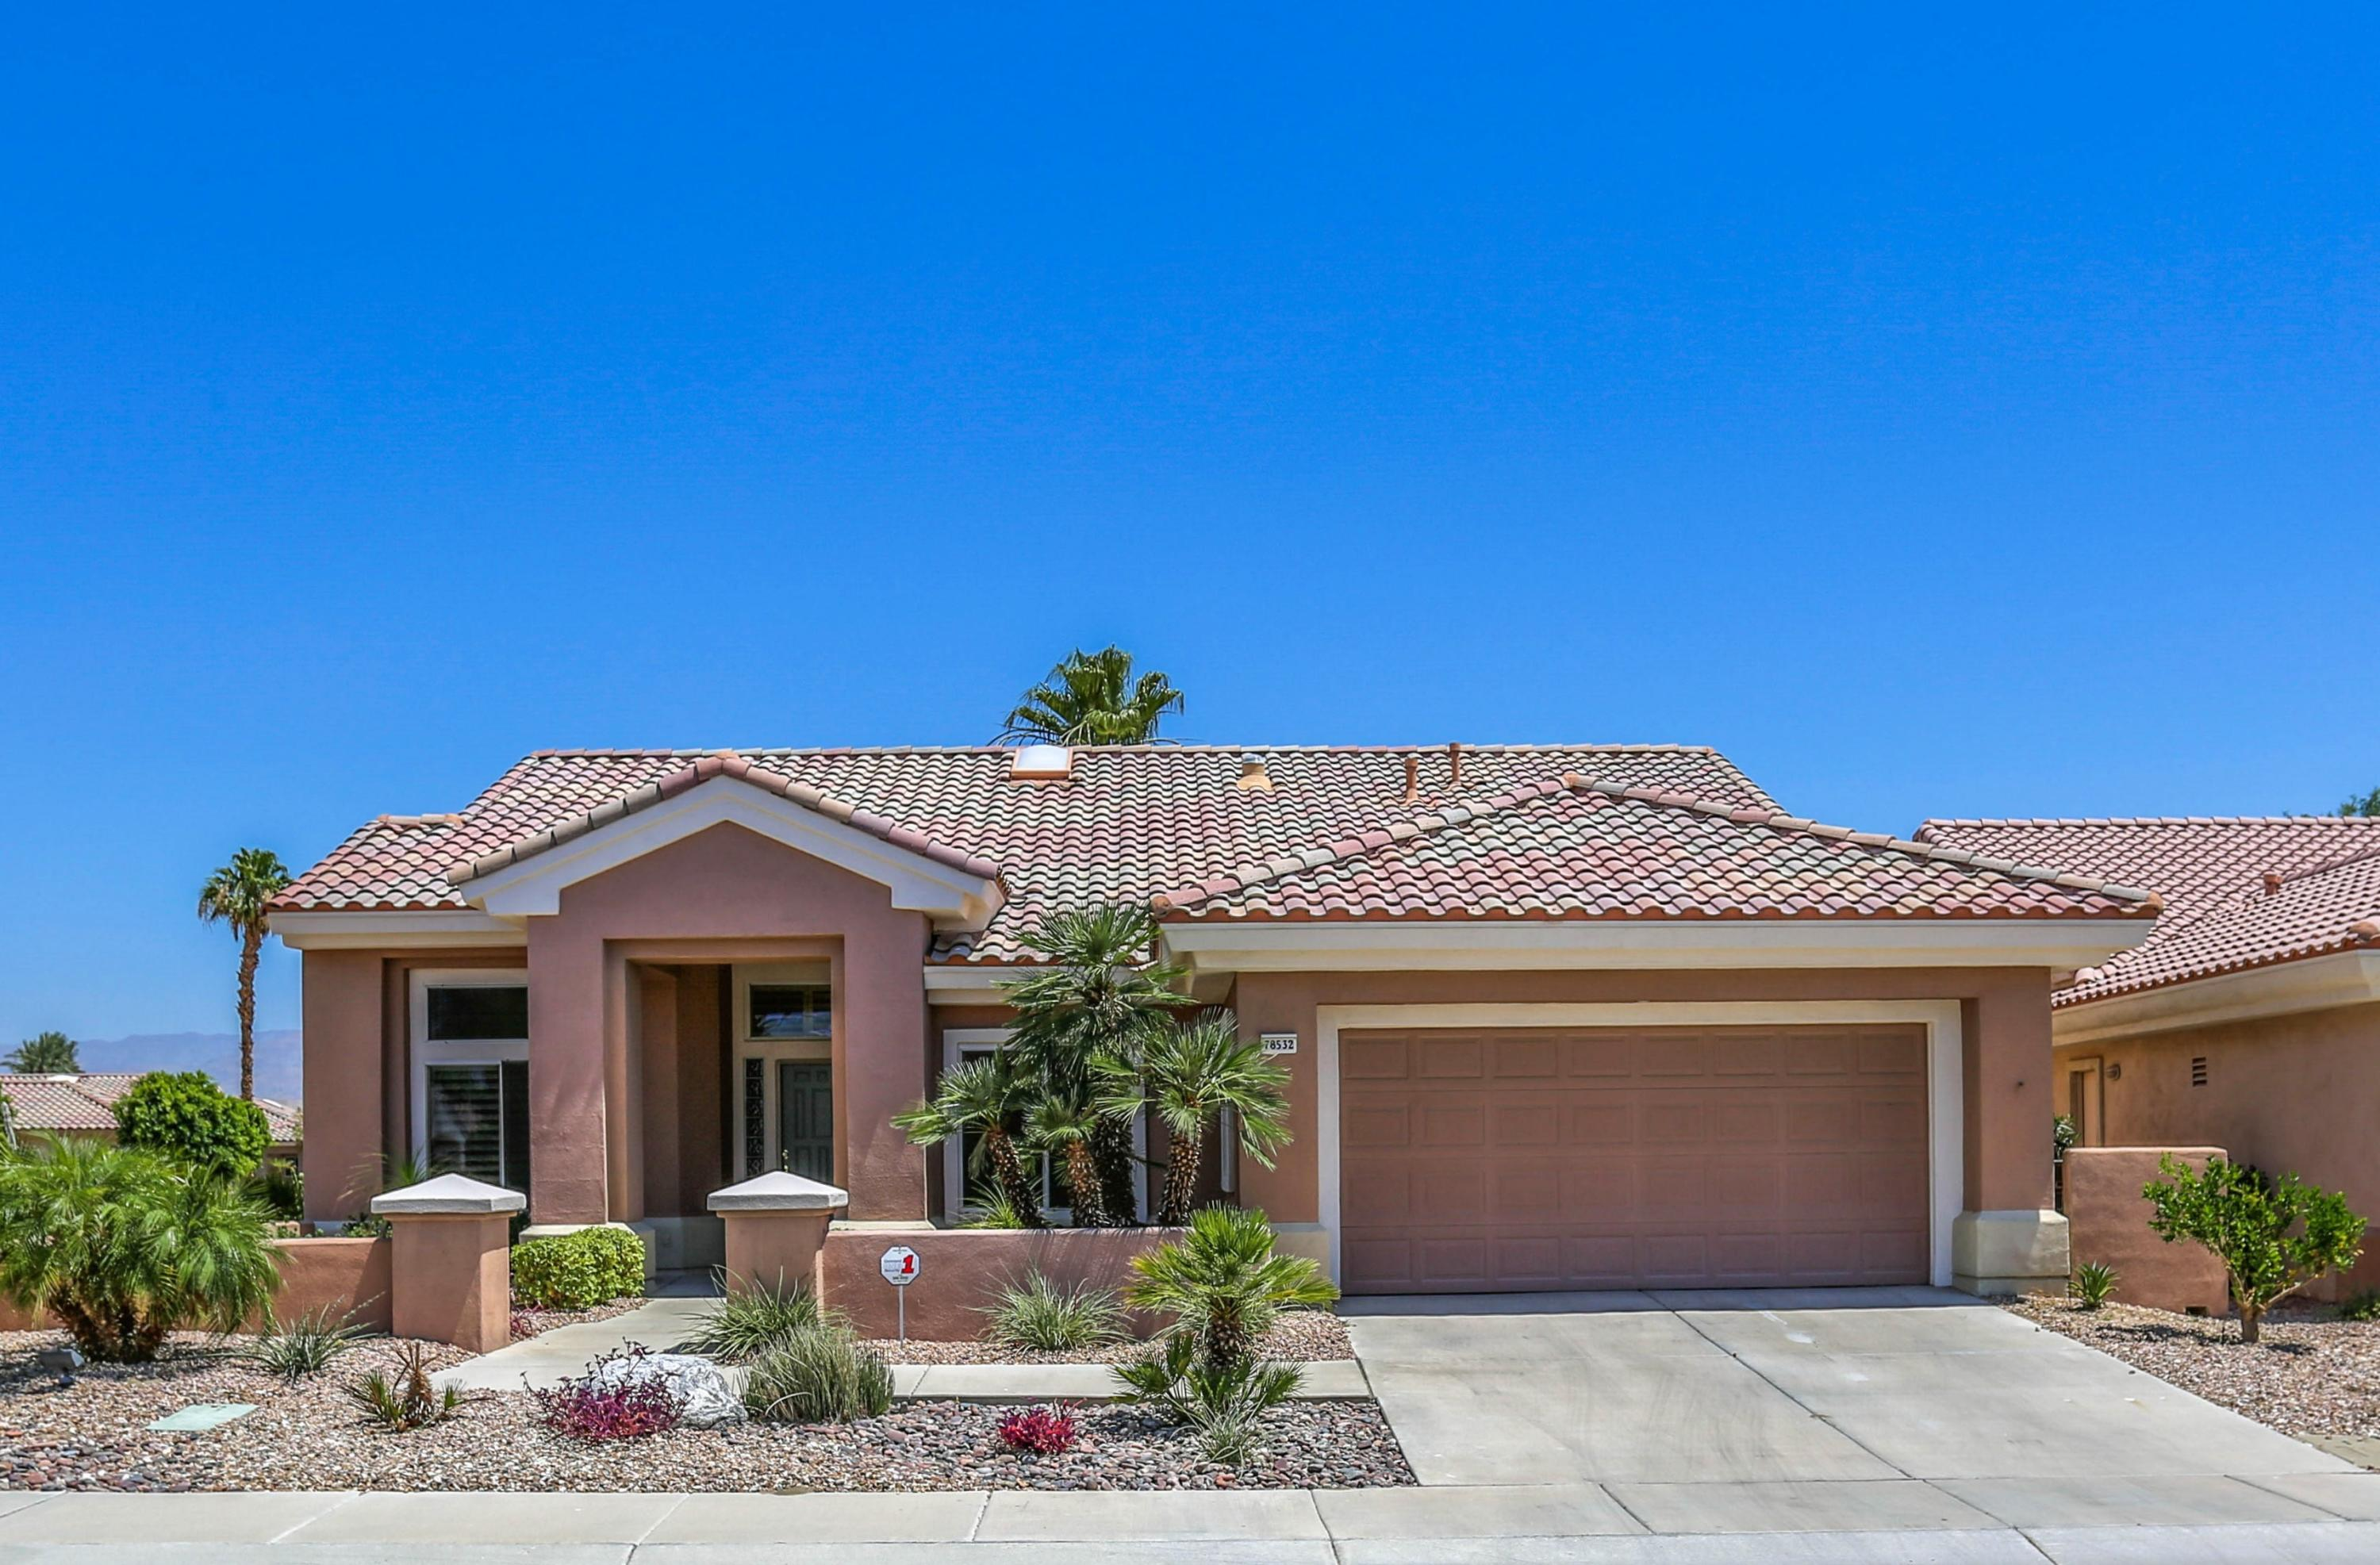 Photo of 78532 Autumn Lane, Palm Desert, CA 92211